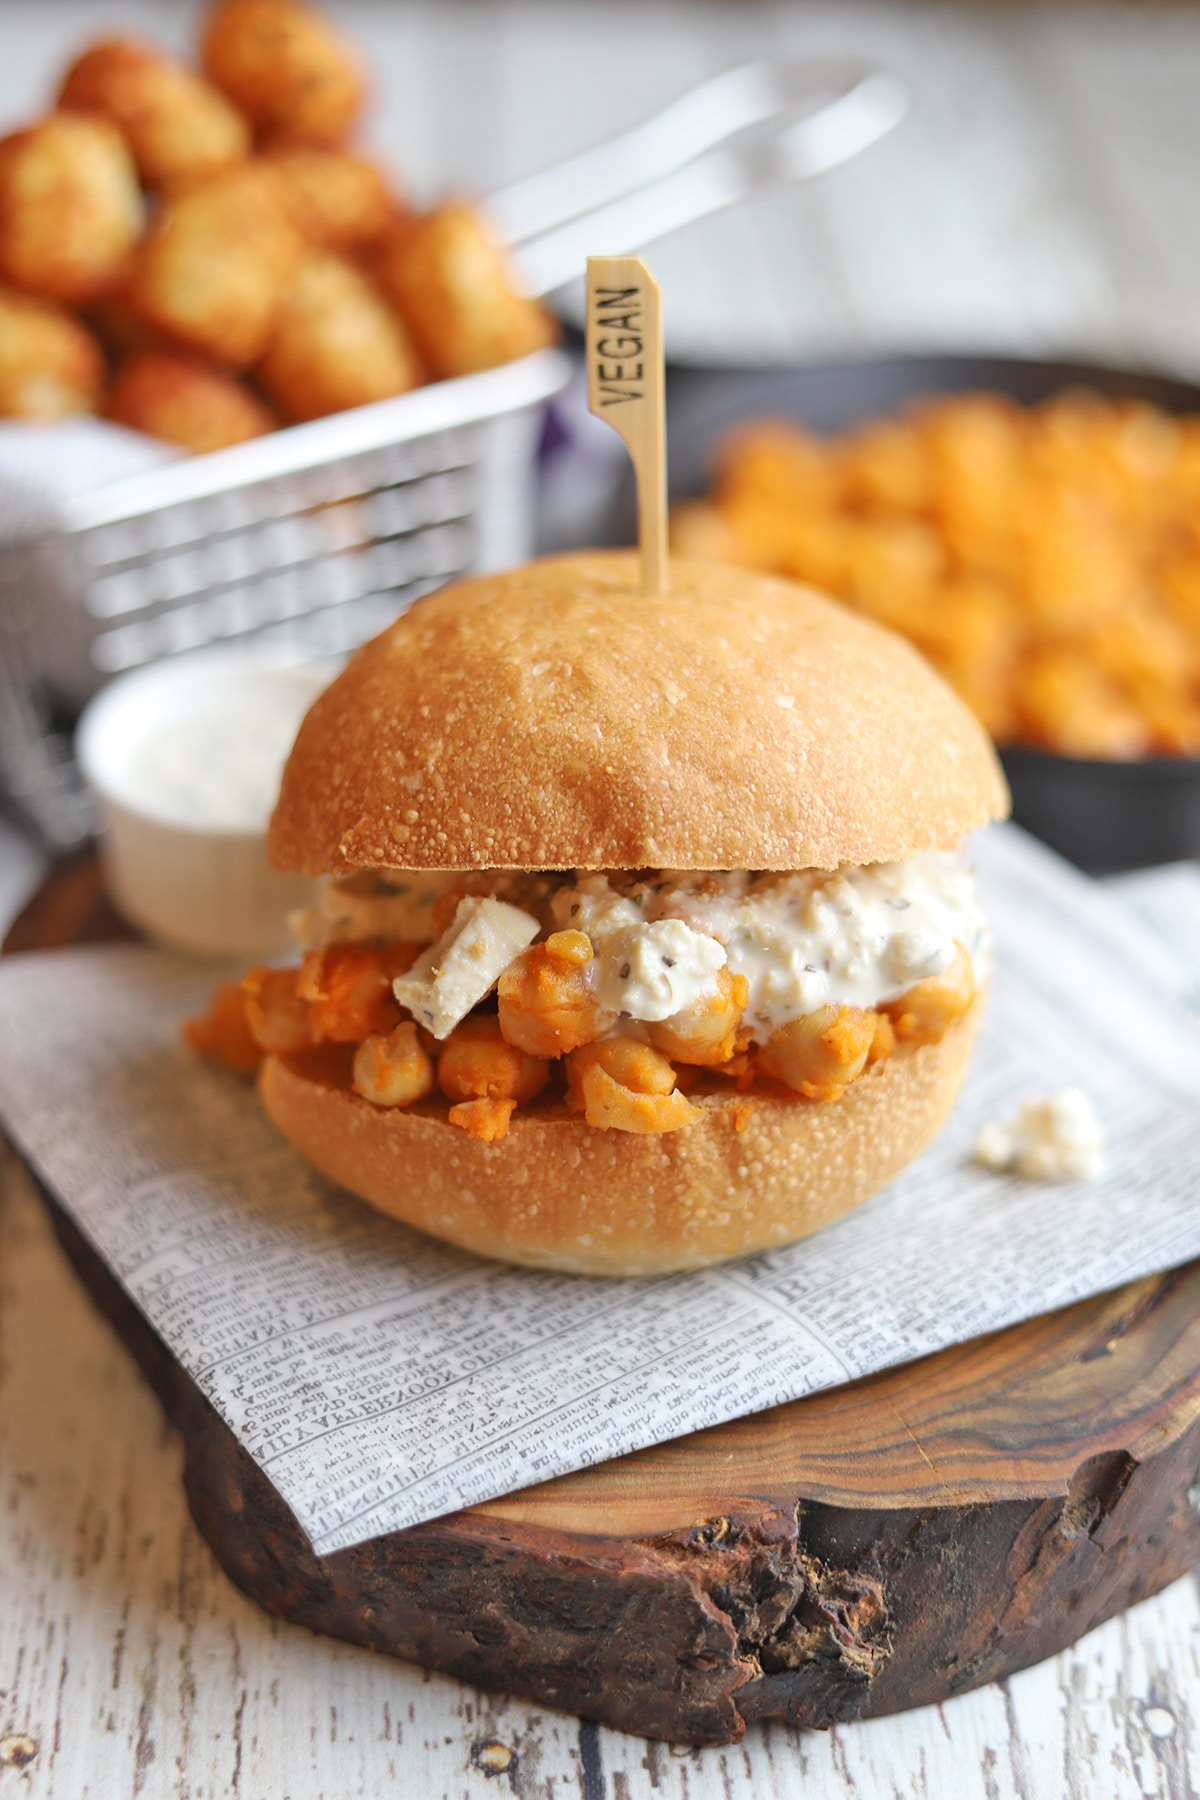 Chickpea sandwich on table with tater tots.